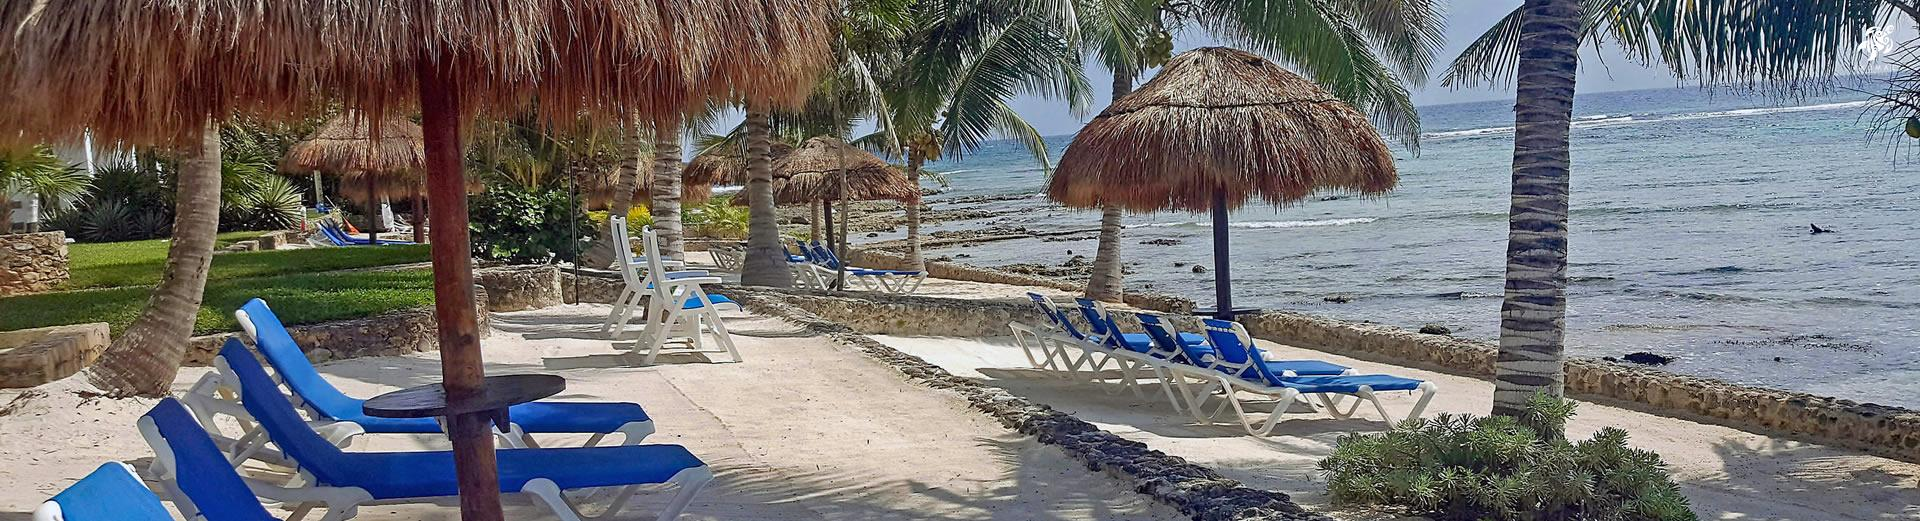 Our private beach with beach loungers and palapas